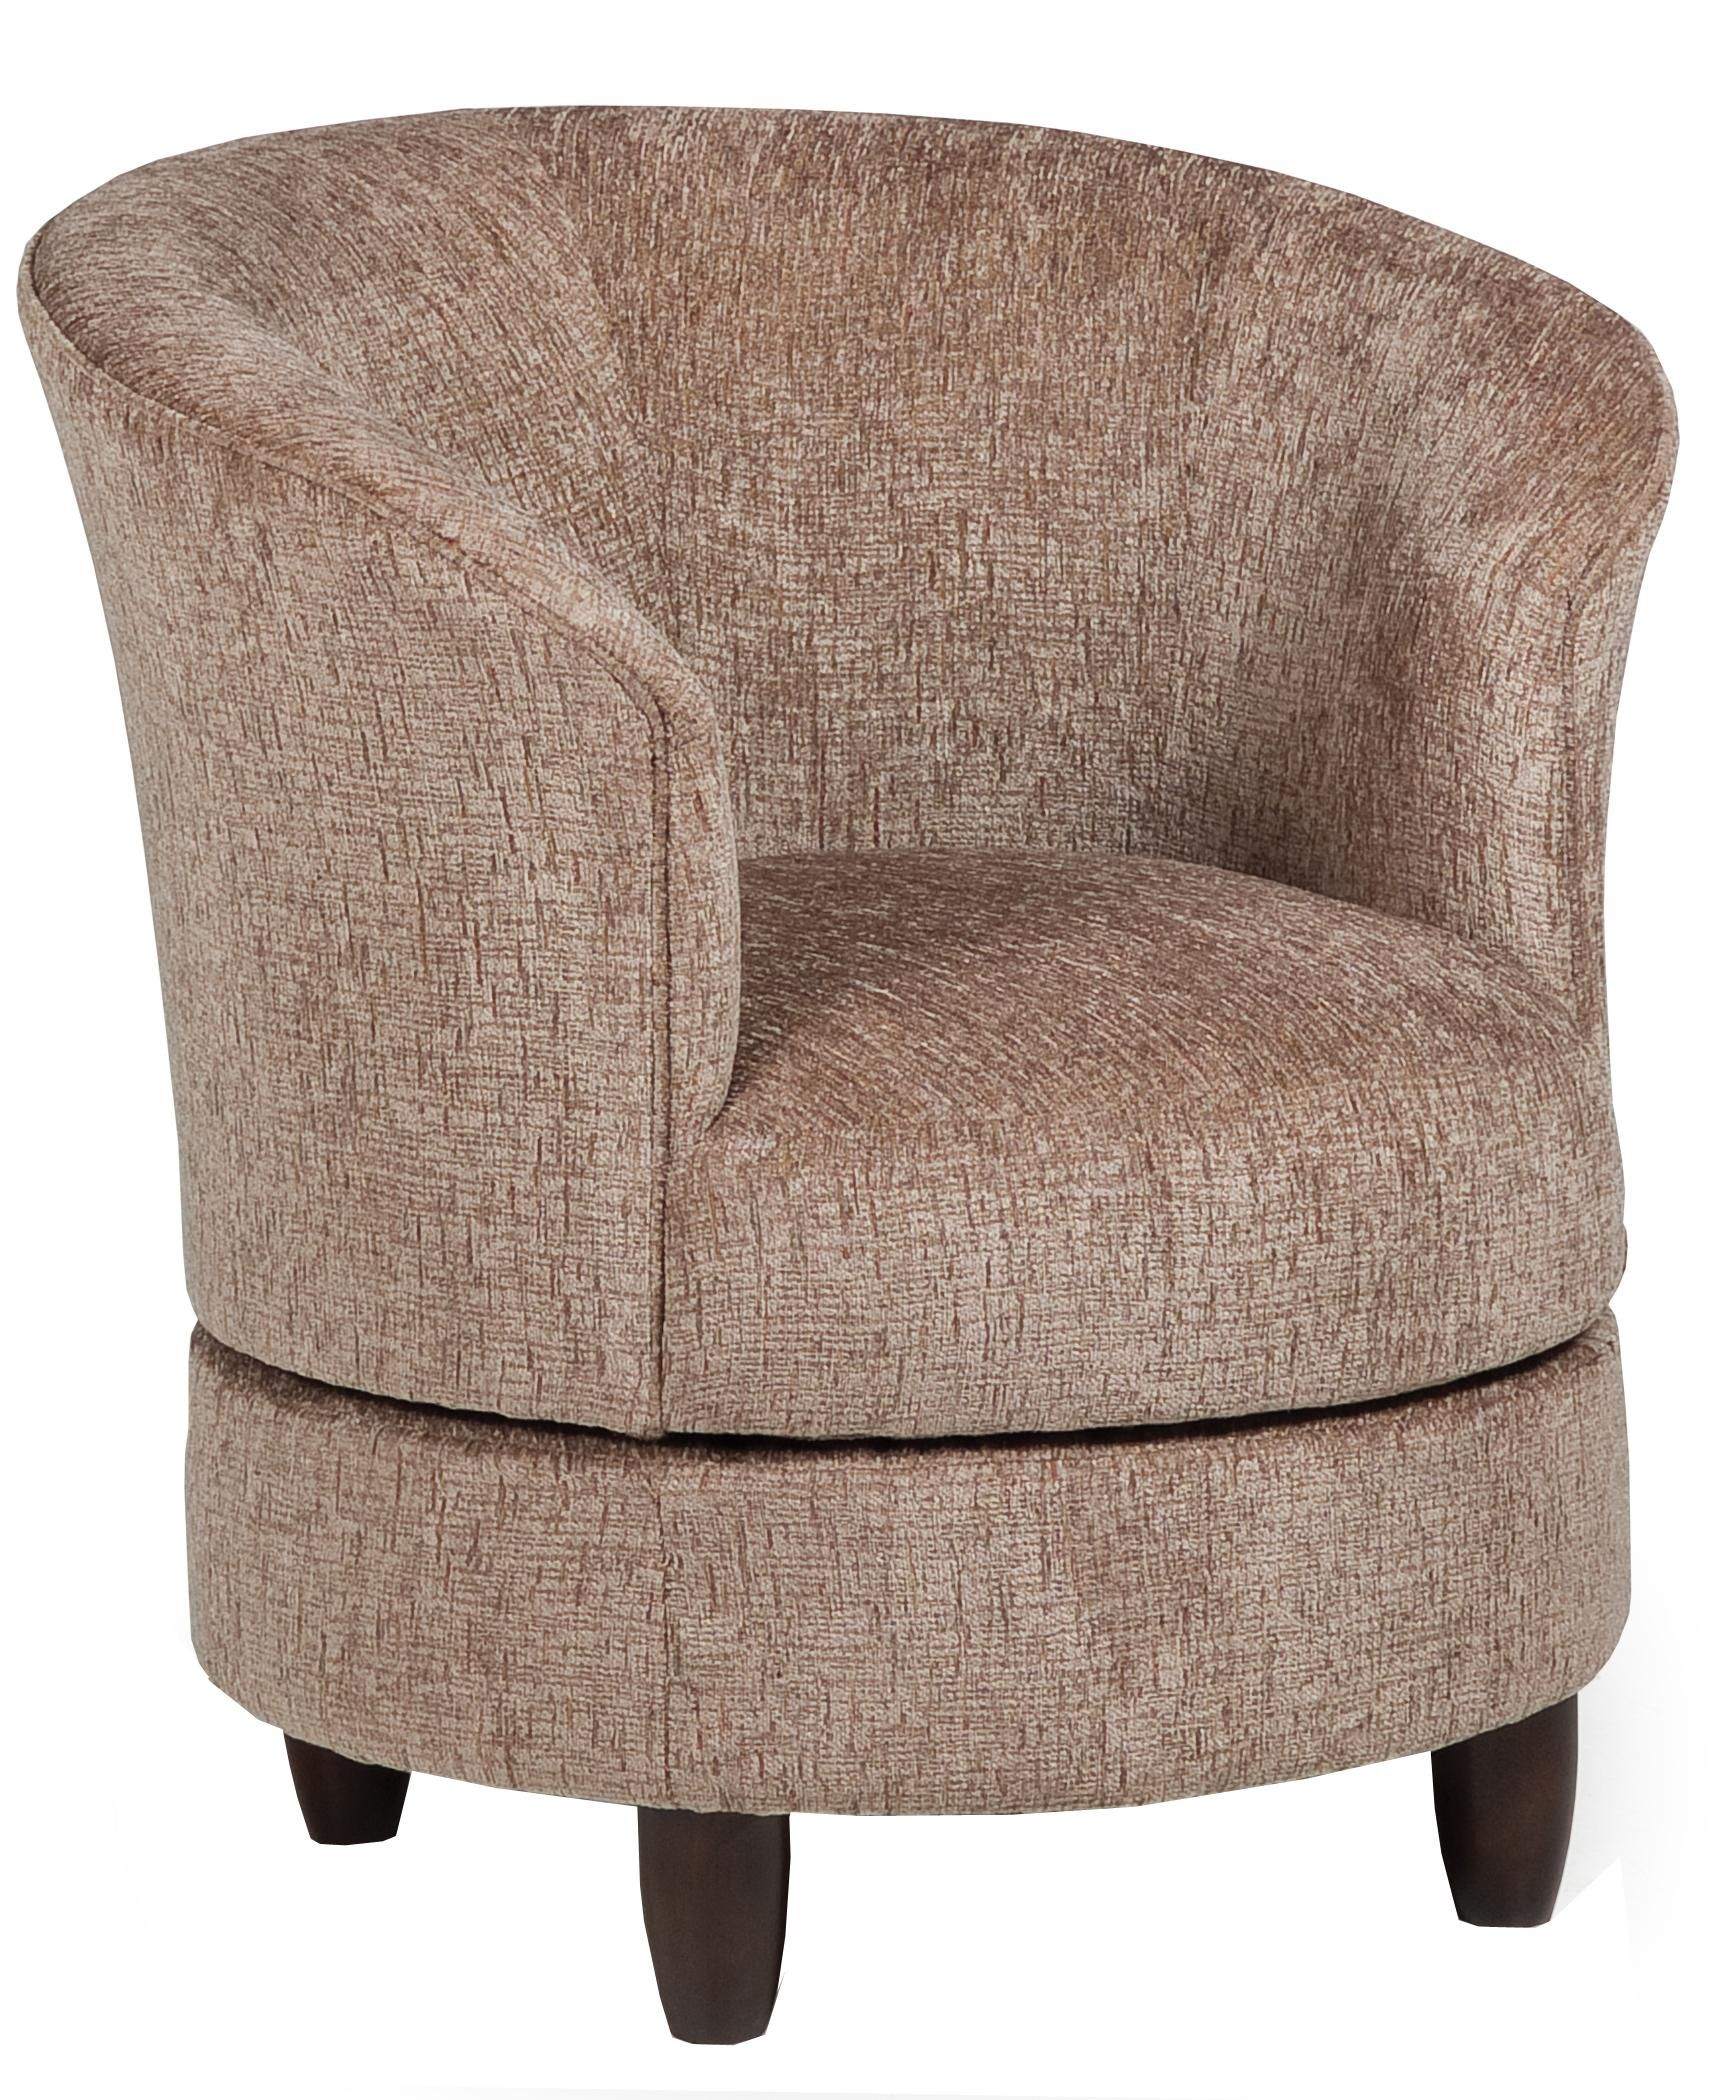 Accent Chairs Swivel Barrel Chairbest Home Furnishings | Living Within Harbor Grey Swivel Accent Chairs (Image 2 of 25)